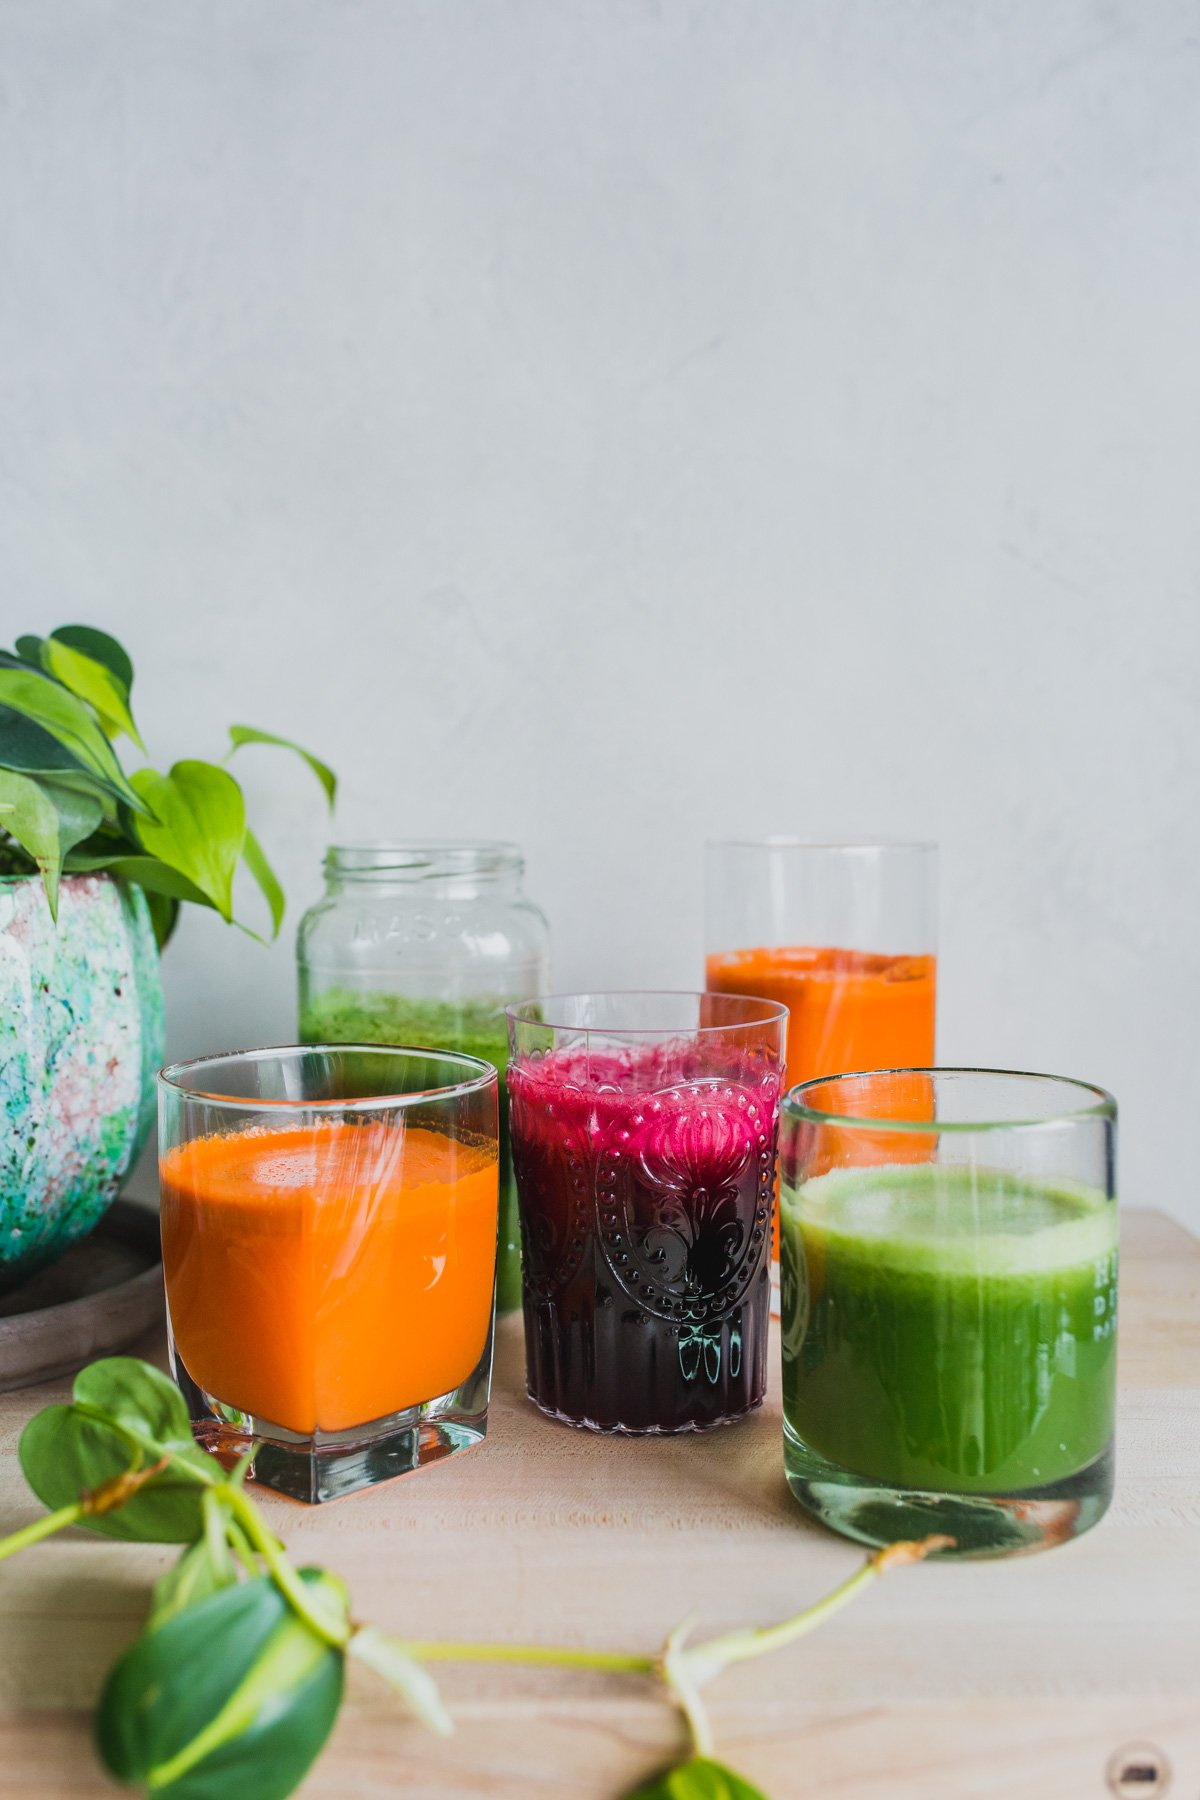 5 Easy-to-Make Fresh Juice Recipes For Clear Skin